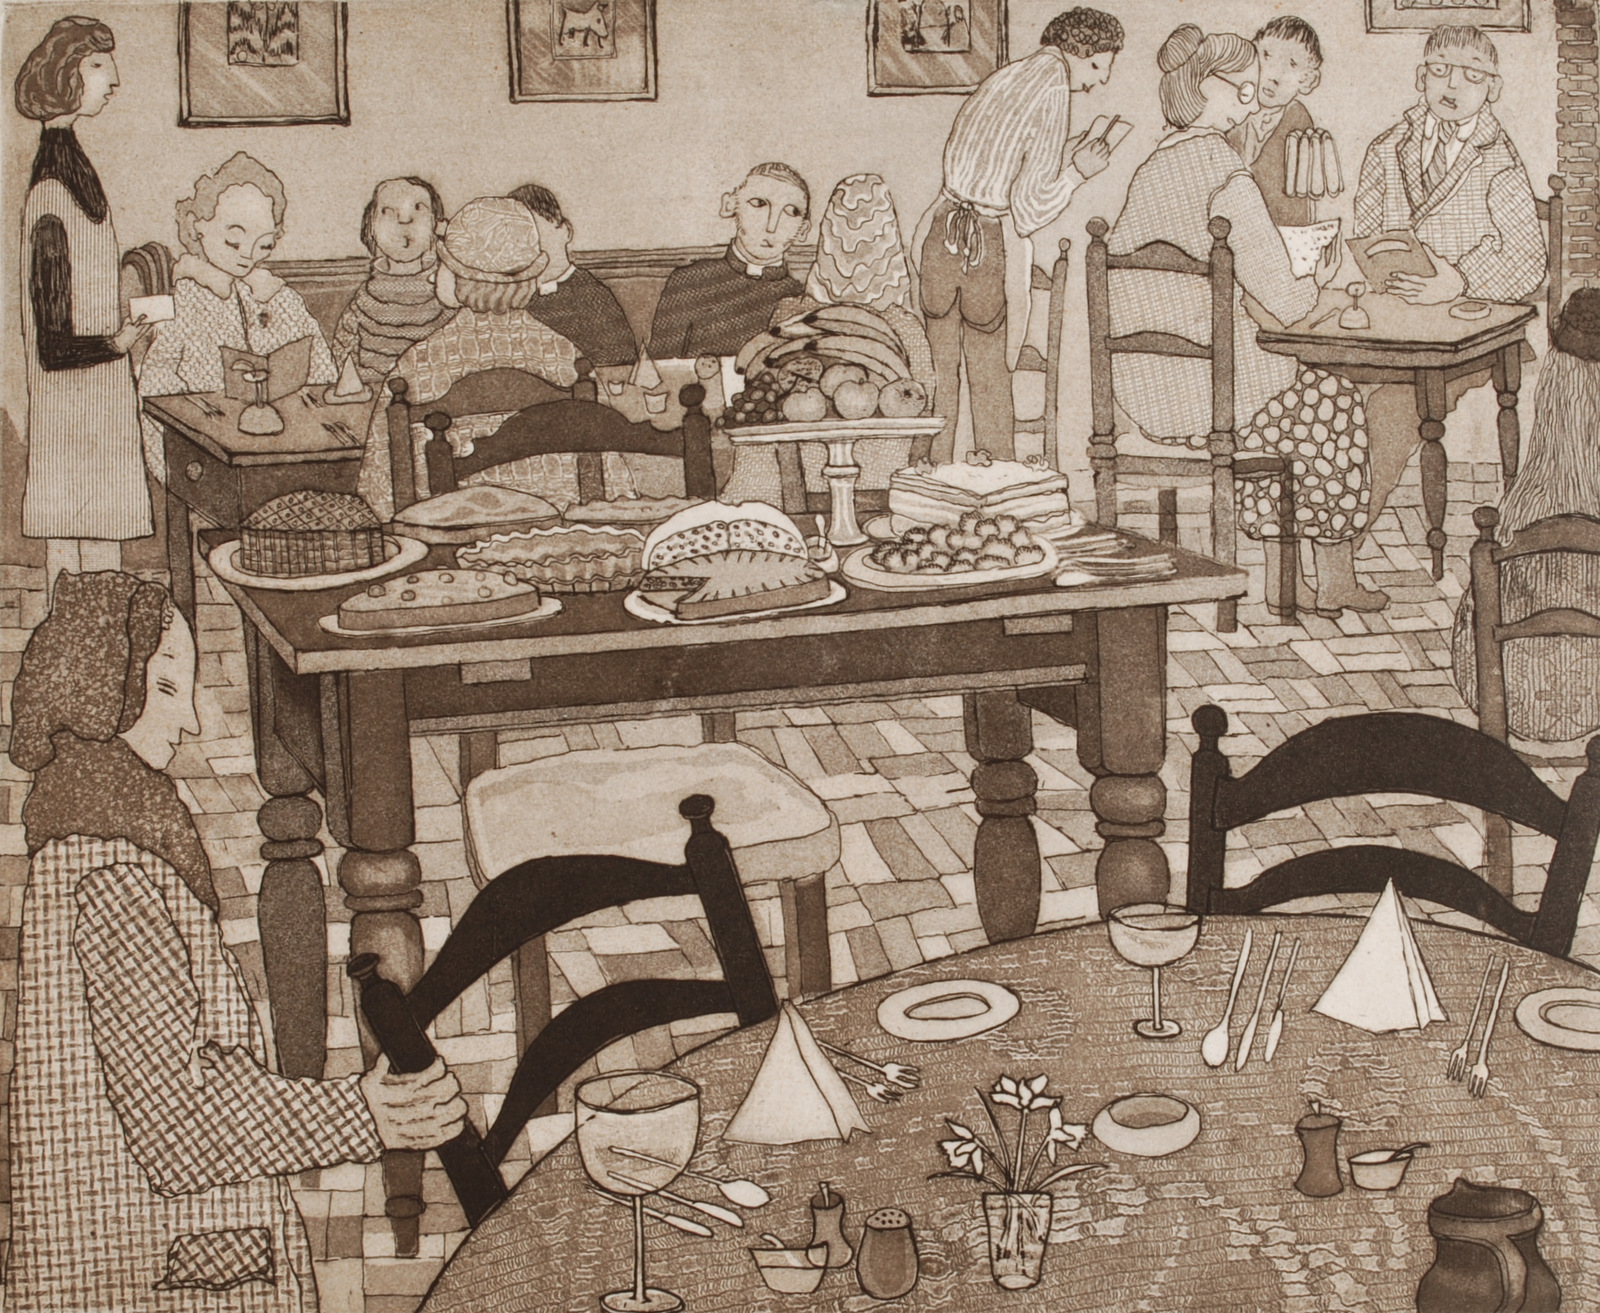 Lot 58 - DOROTHY BORDASS The Cake Table Engraving Signed and dated Numbered IV/XII 1977 25 x 30 cm